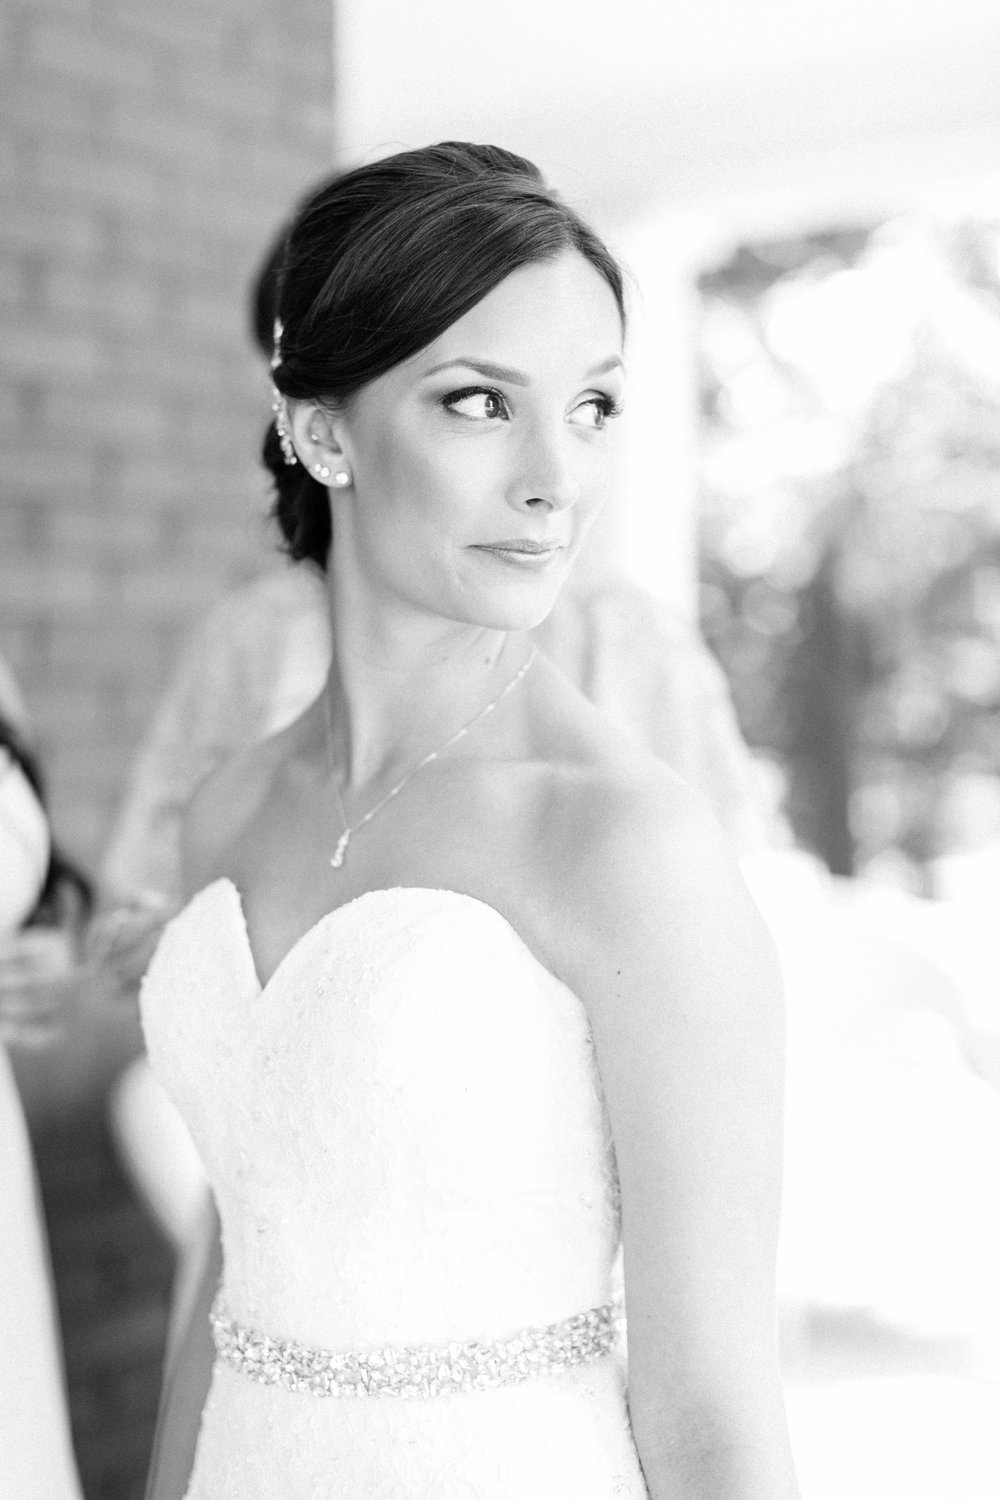 Bride getting ready at Knollwood Golf Club in Ancaster, Ontario